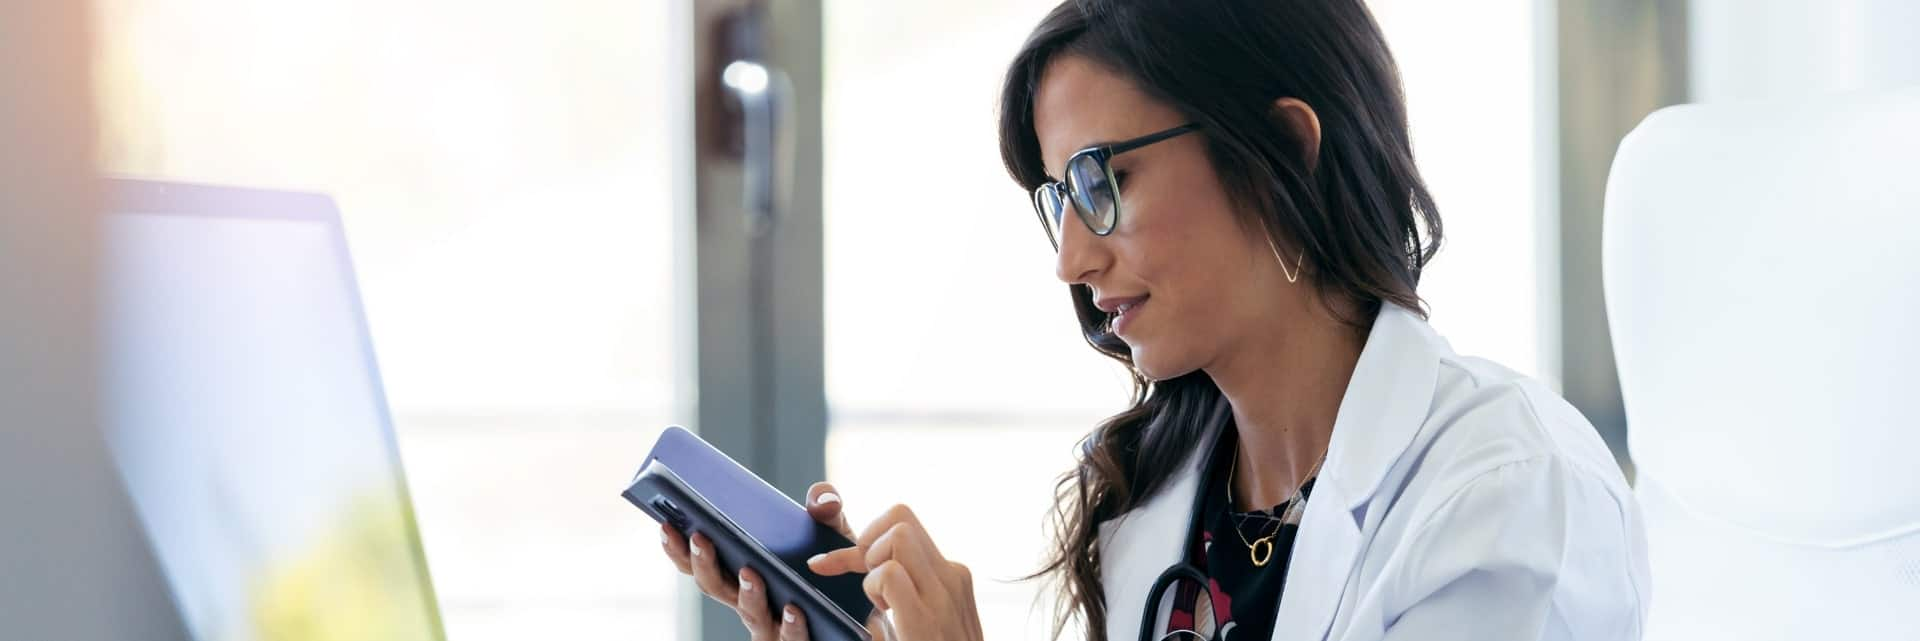 Mobile and In-App Advertising for HCPs: Why Does It Work?